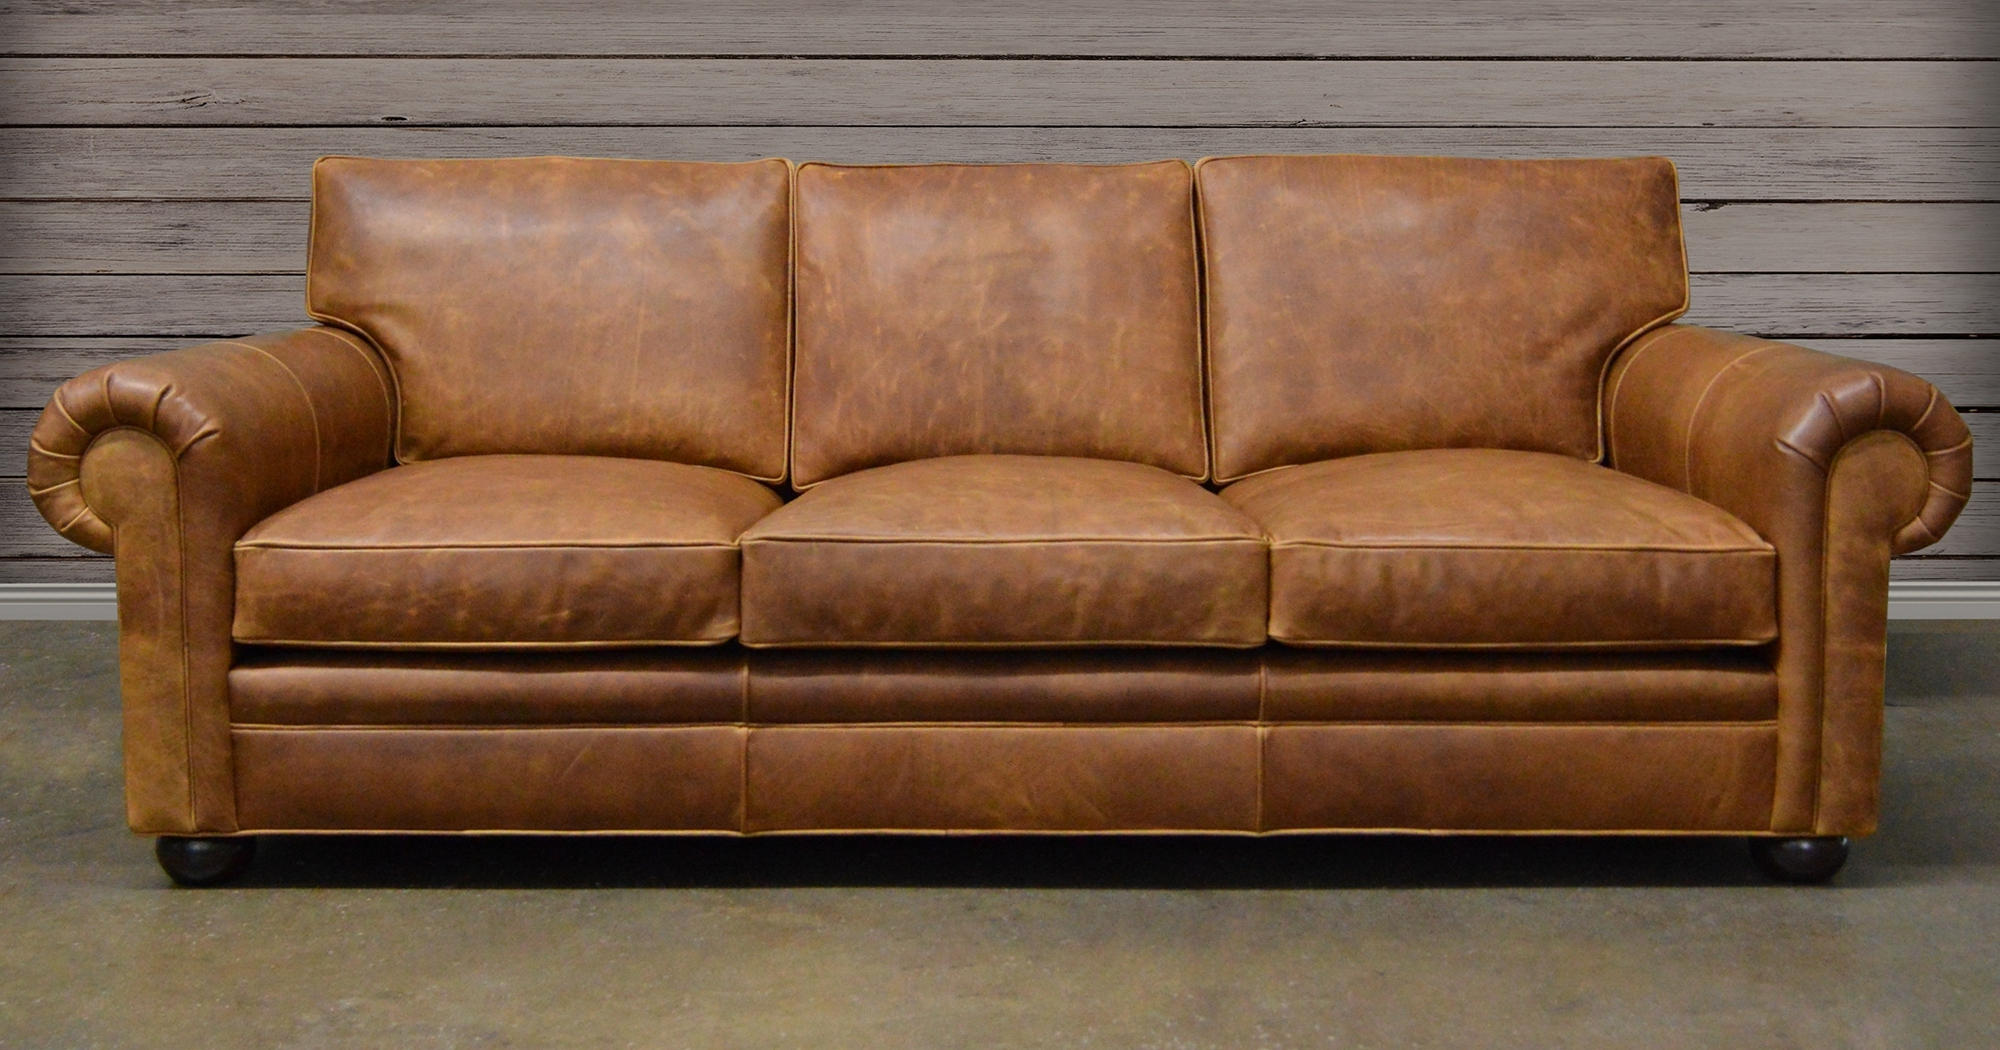 Widely Used Beautiful Full Grain Aniline Leather Sofa 2018 – Couches Ideas Inside Aniline Leather Sofas (View 15 of 15)